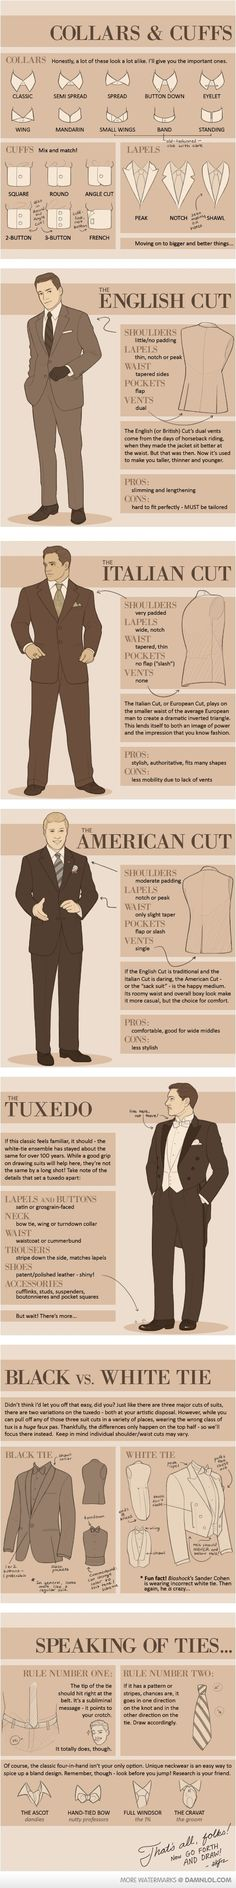 26 Fashion Rules You Should Break Immediately If you have no idea what the difference is between a Square Cuff and a French Cuff, get schooled before you go looking for your wedding attire with this handy infographic!